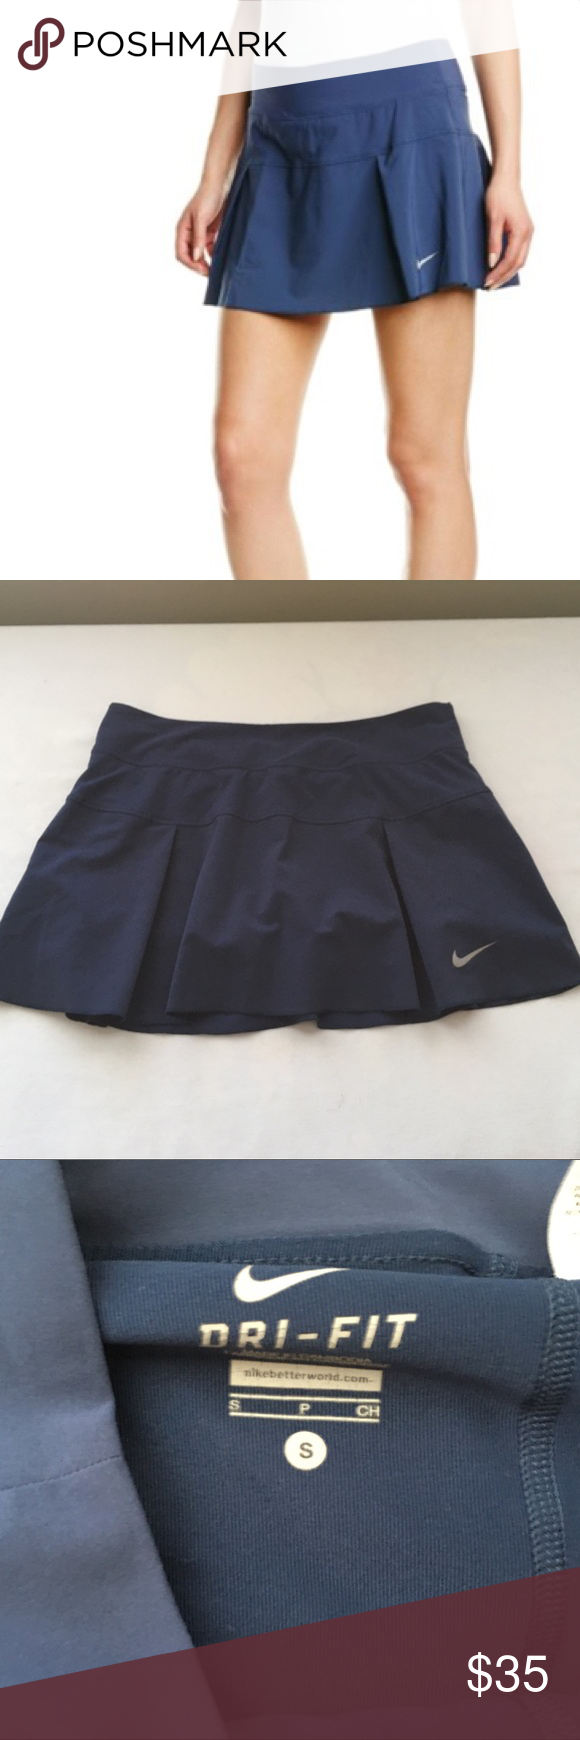 Nike Victory Court Pleated Tennis Skirt S Tennis Skirt Pleated Tennis Skirt Tennis Skirts